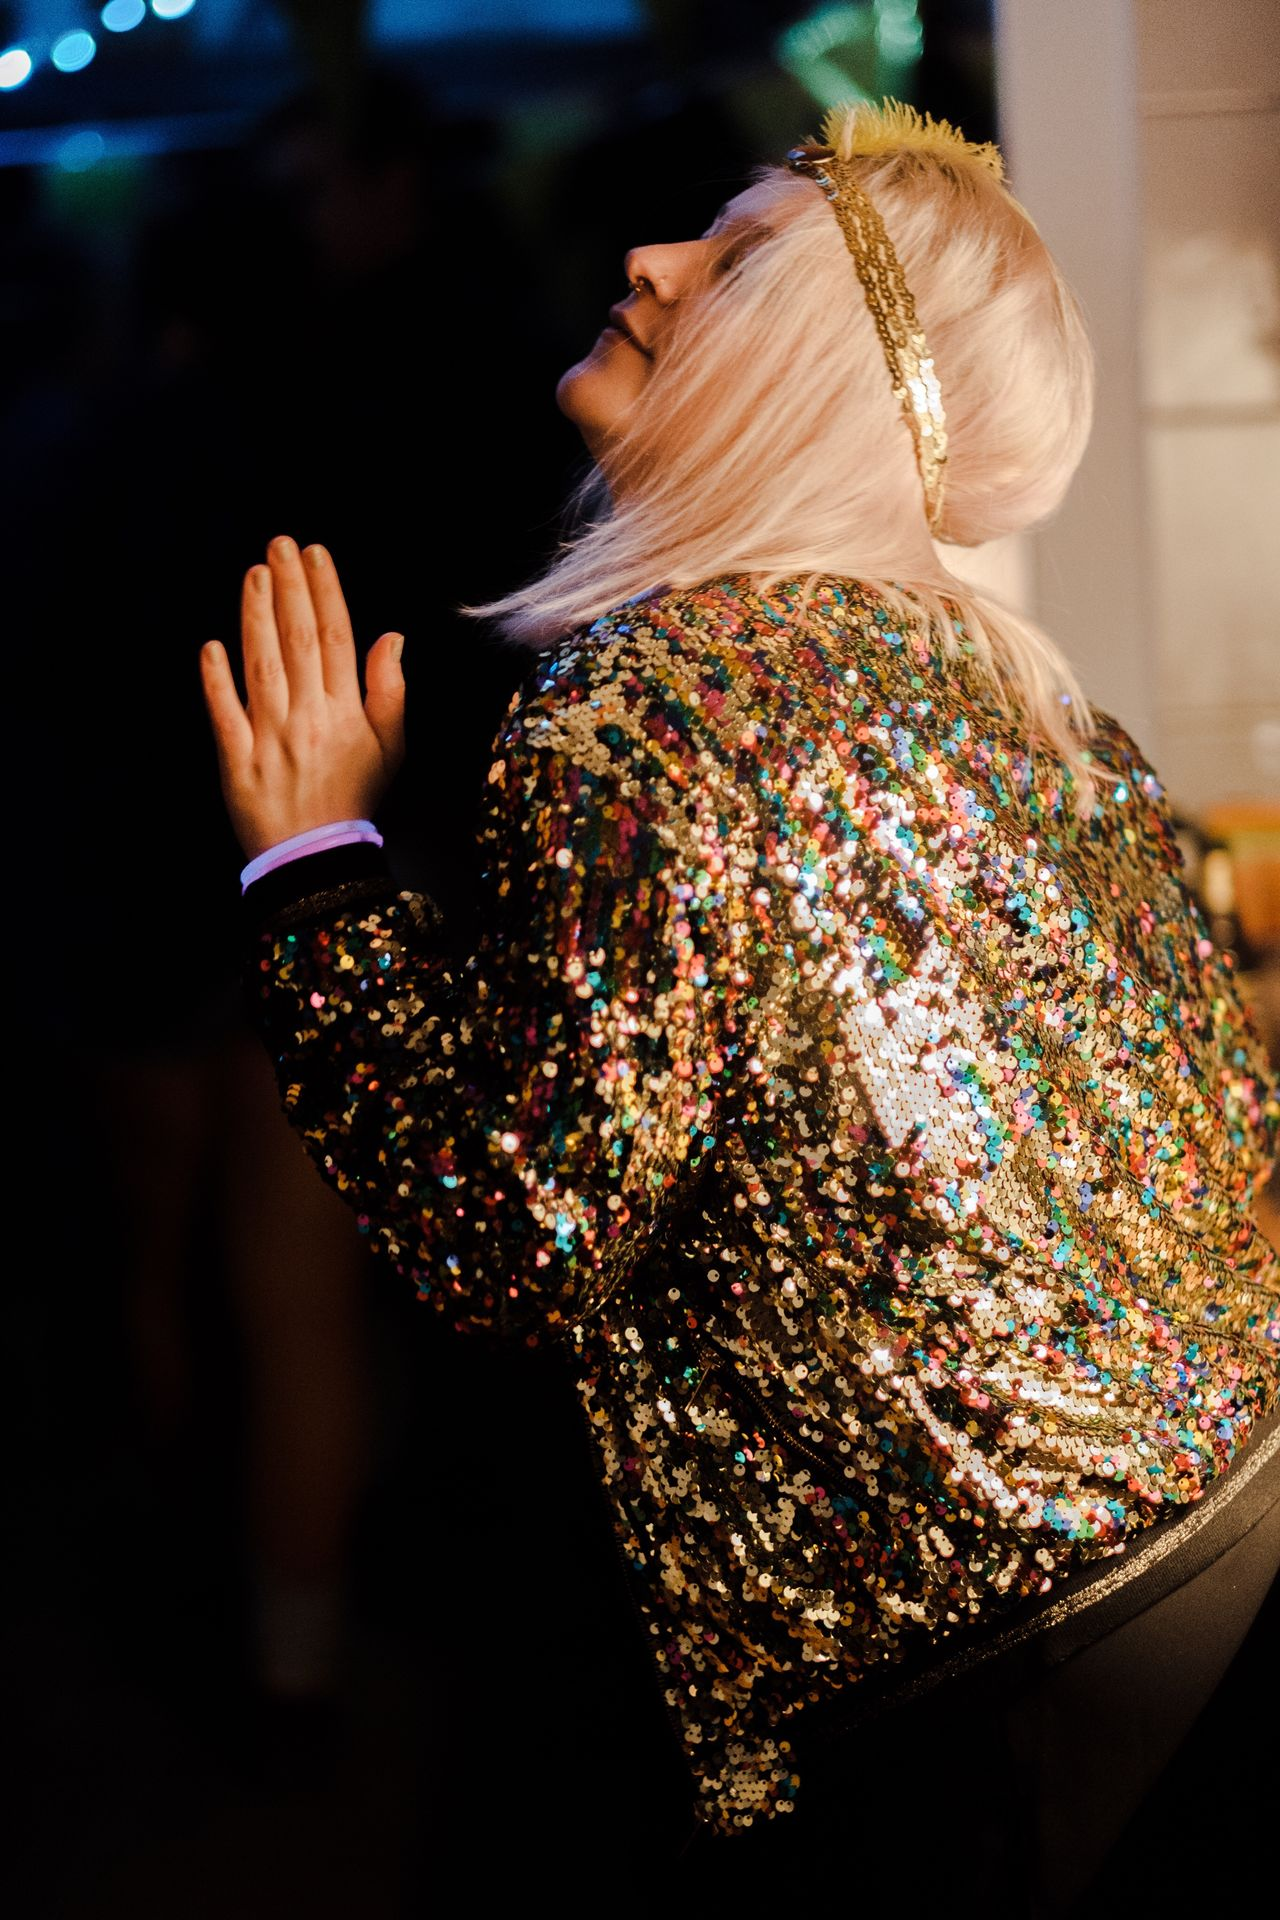 Party Time Party Partying Party Time! Rear View Blond Hair One Person Dancing Indoors  Night Netherlands EyeEm Best Edits EyeEm Gallery EyeEmBestPics EyeEm EyeEm Best Shots EyeEmBestEdits Fujifilm Fujifilm_xseries Vinkeveen Beautiful Woman Glitter Sparks Sparkle Women Around The World